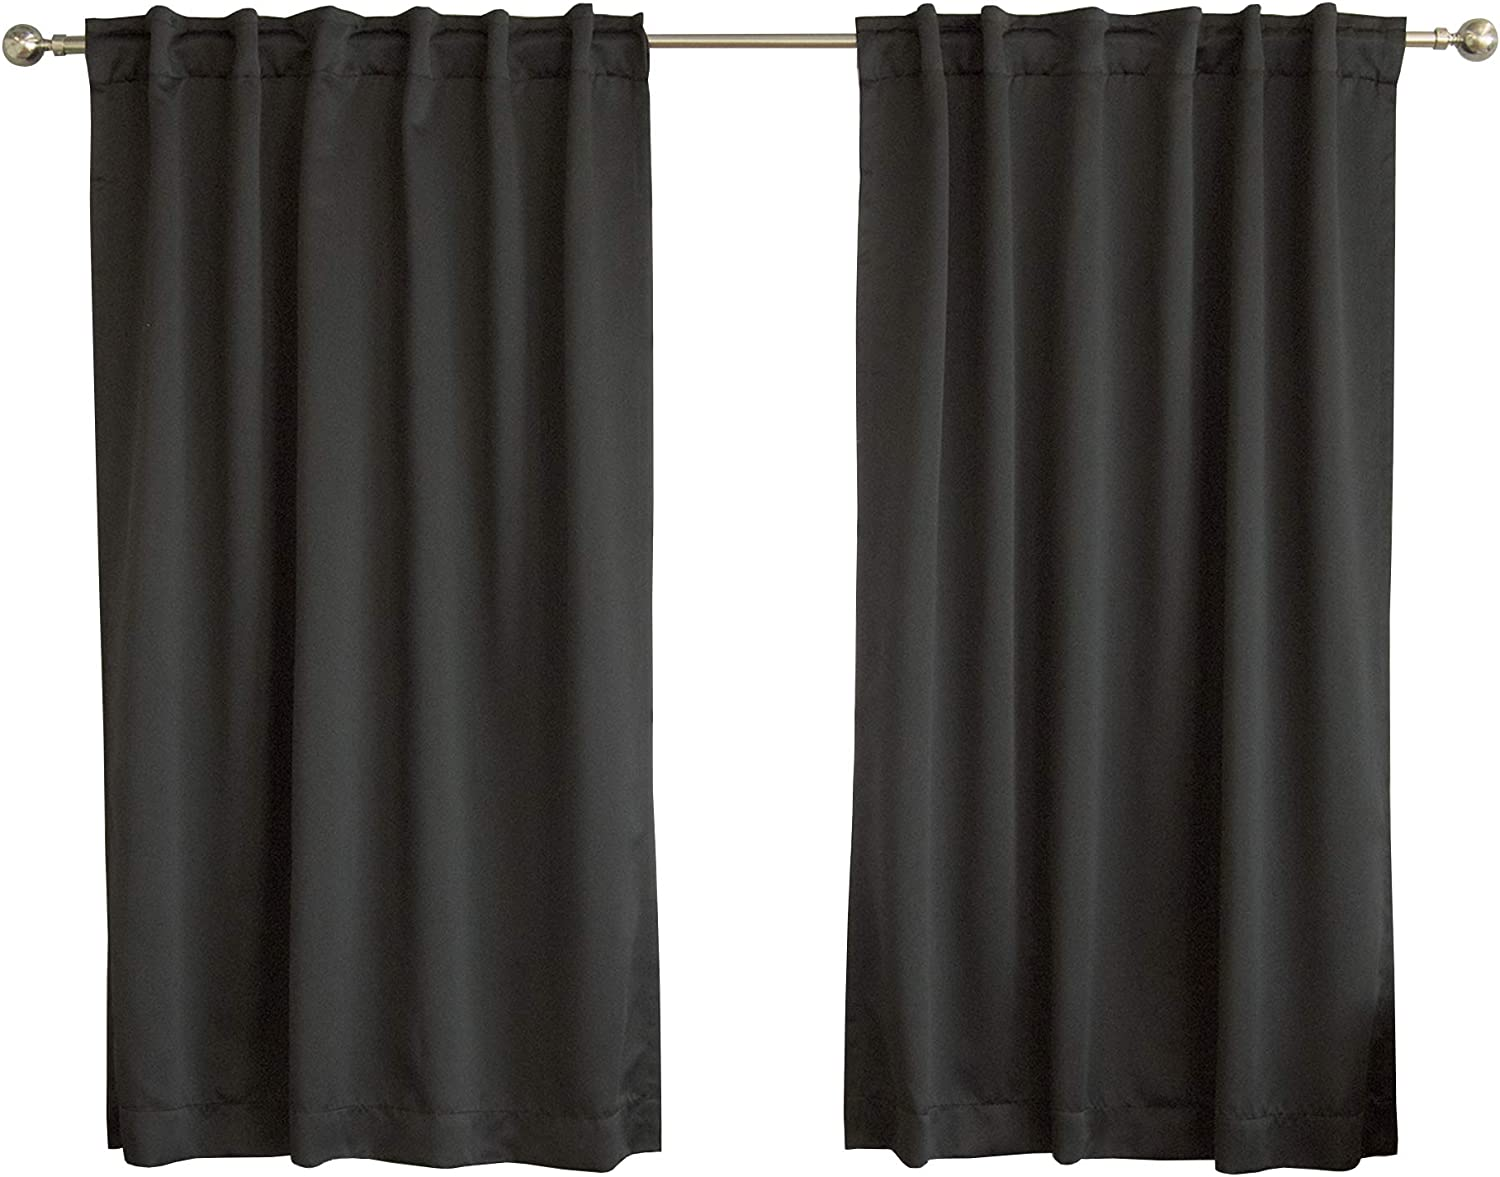 Amazon Com Best Home Fashion Basic Thermal Insulated Blackout